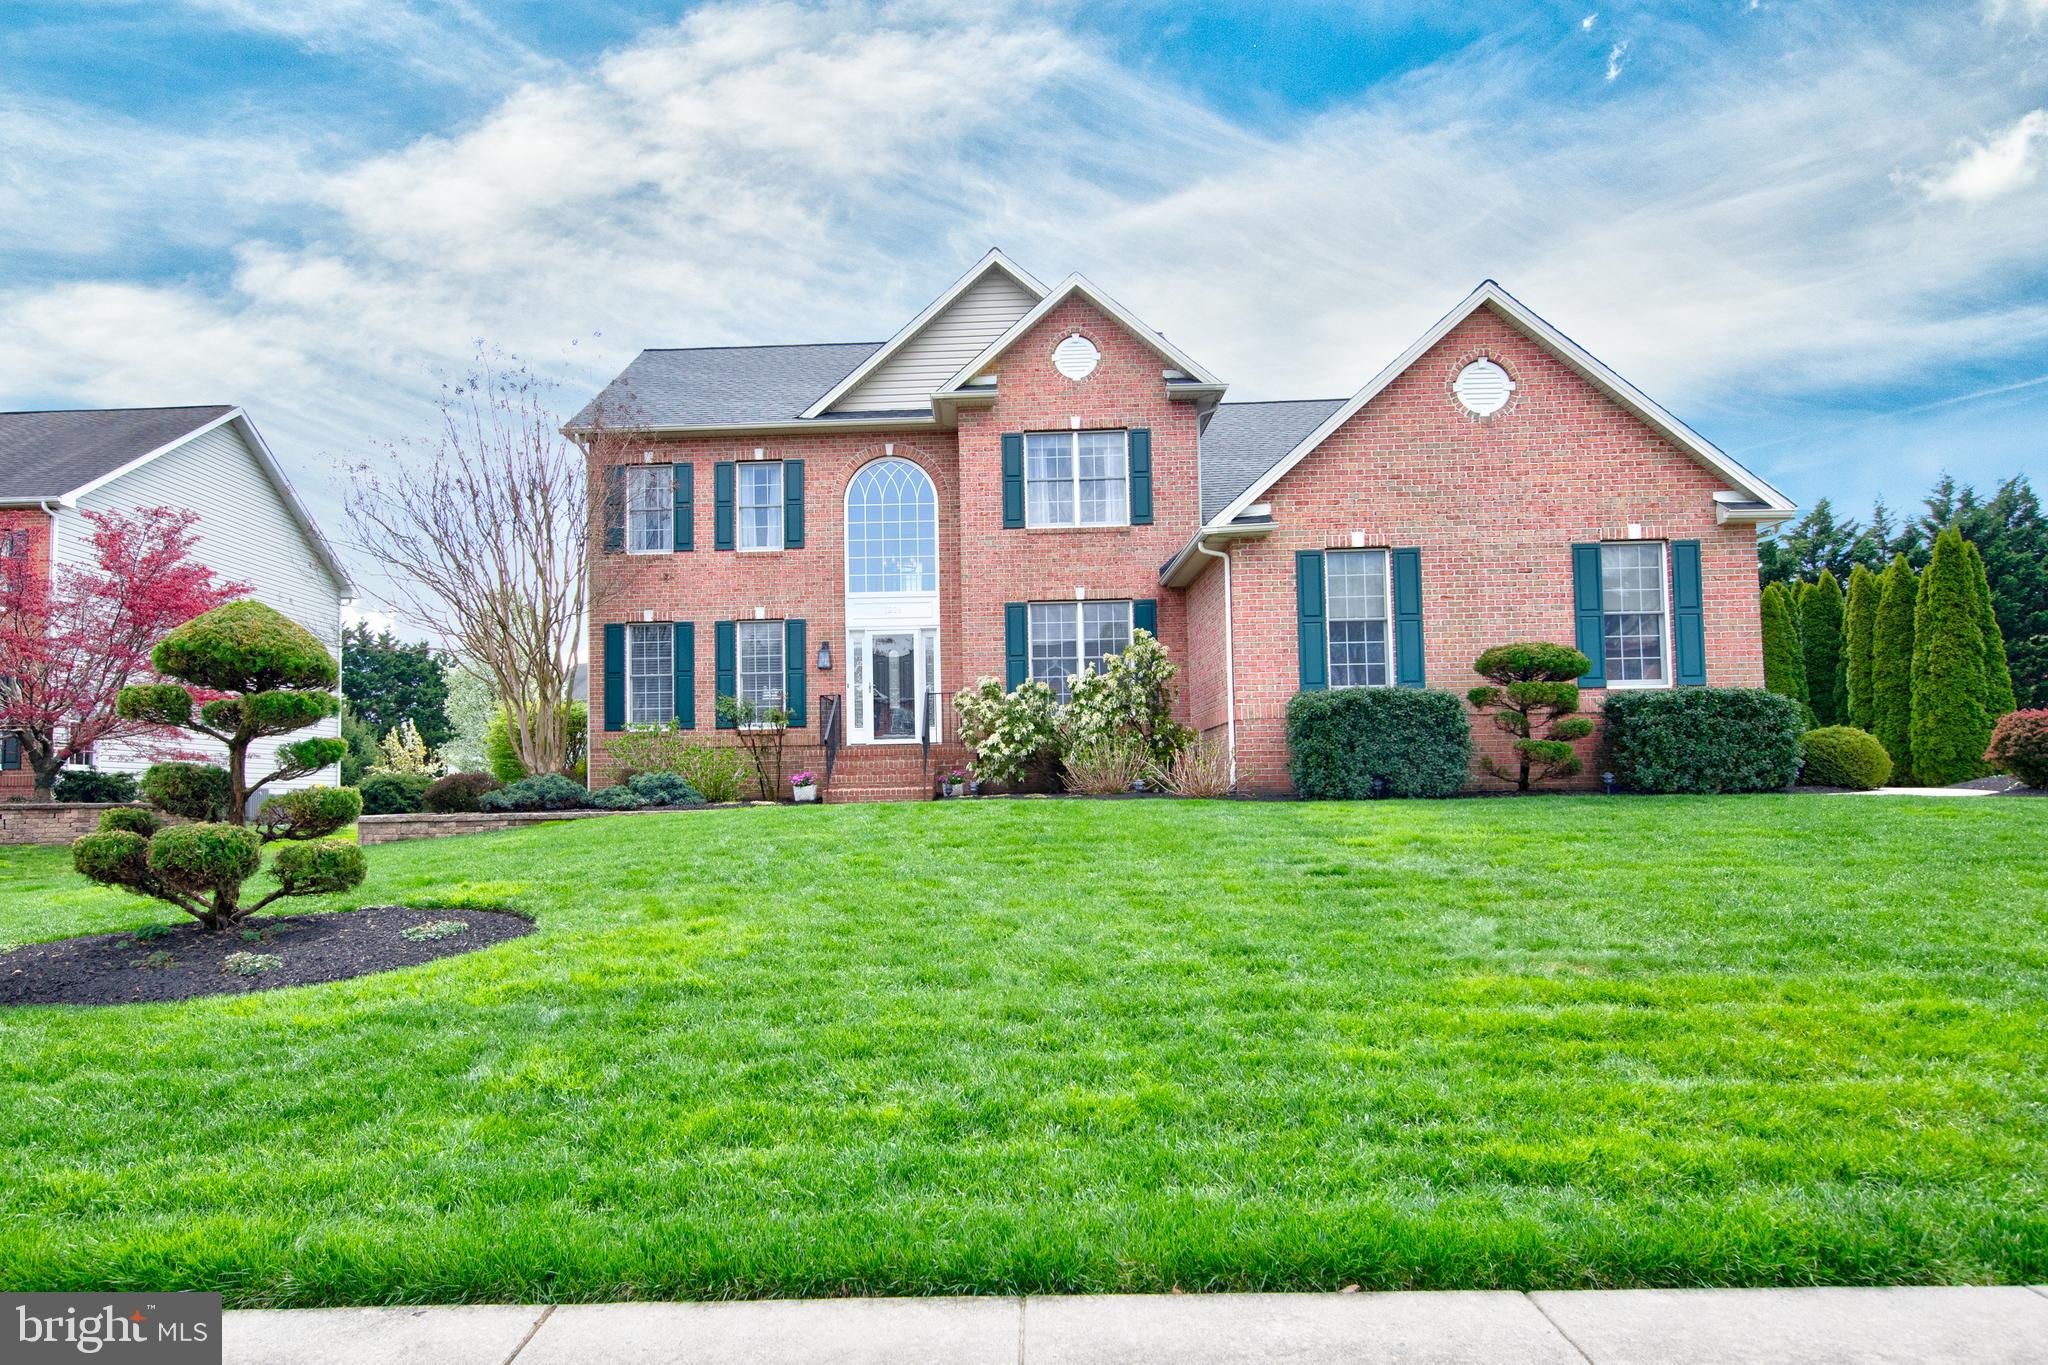 Immaculate 4 -5 bedroom Brick front home in the desirable FOX Chase community. Two story freshly pai